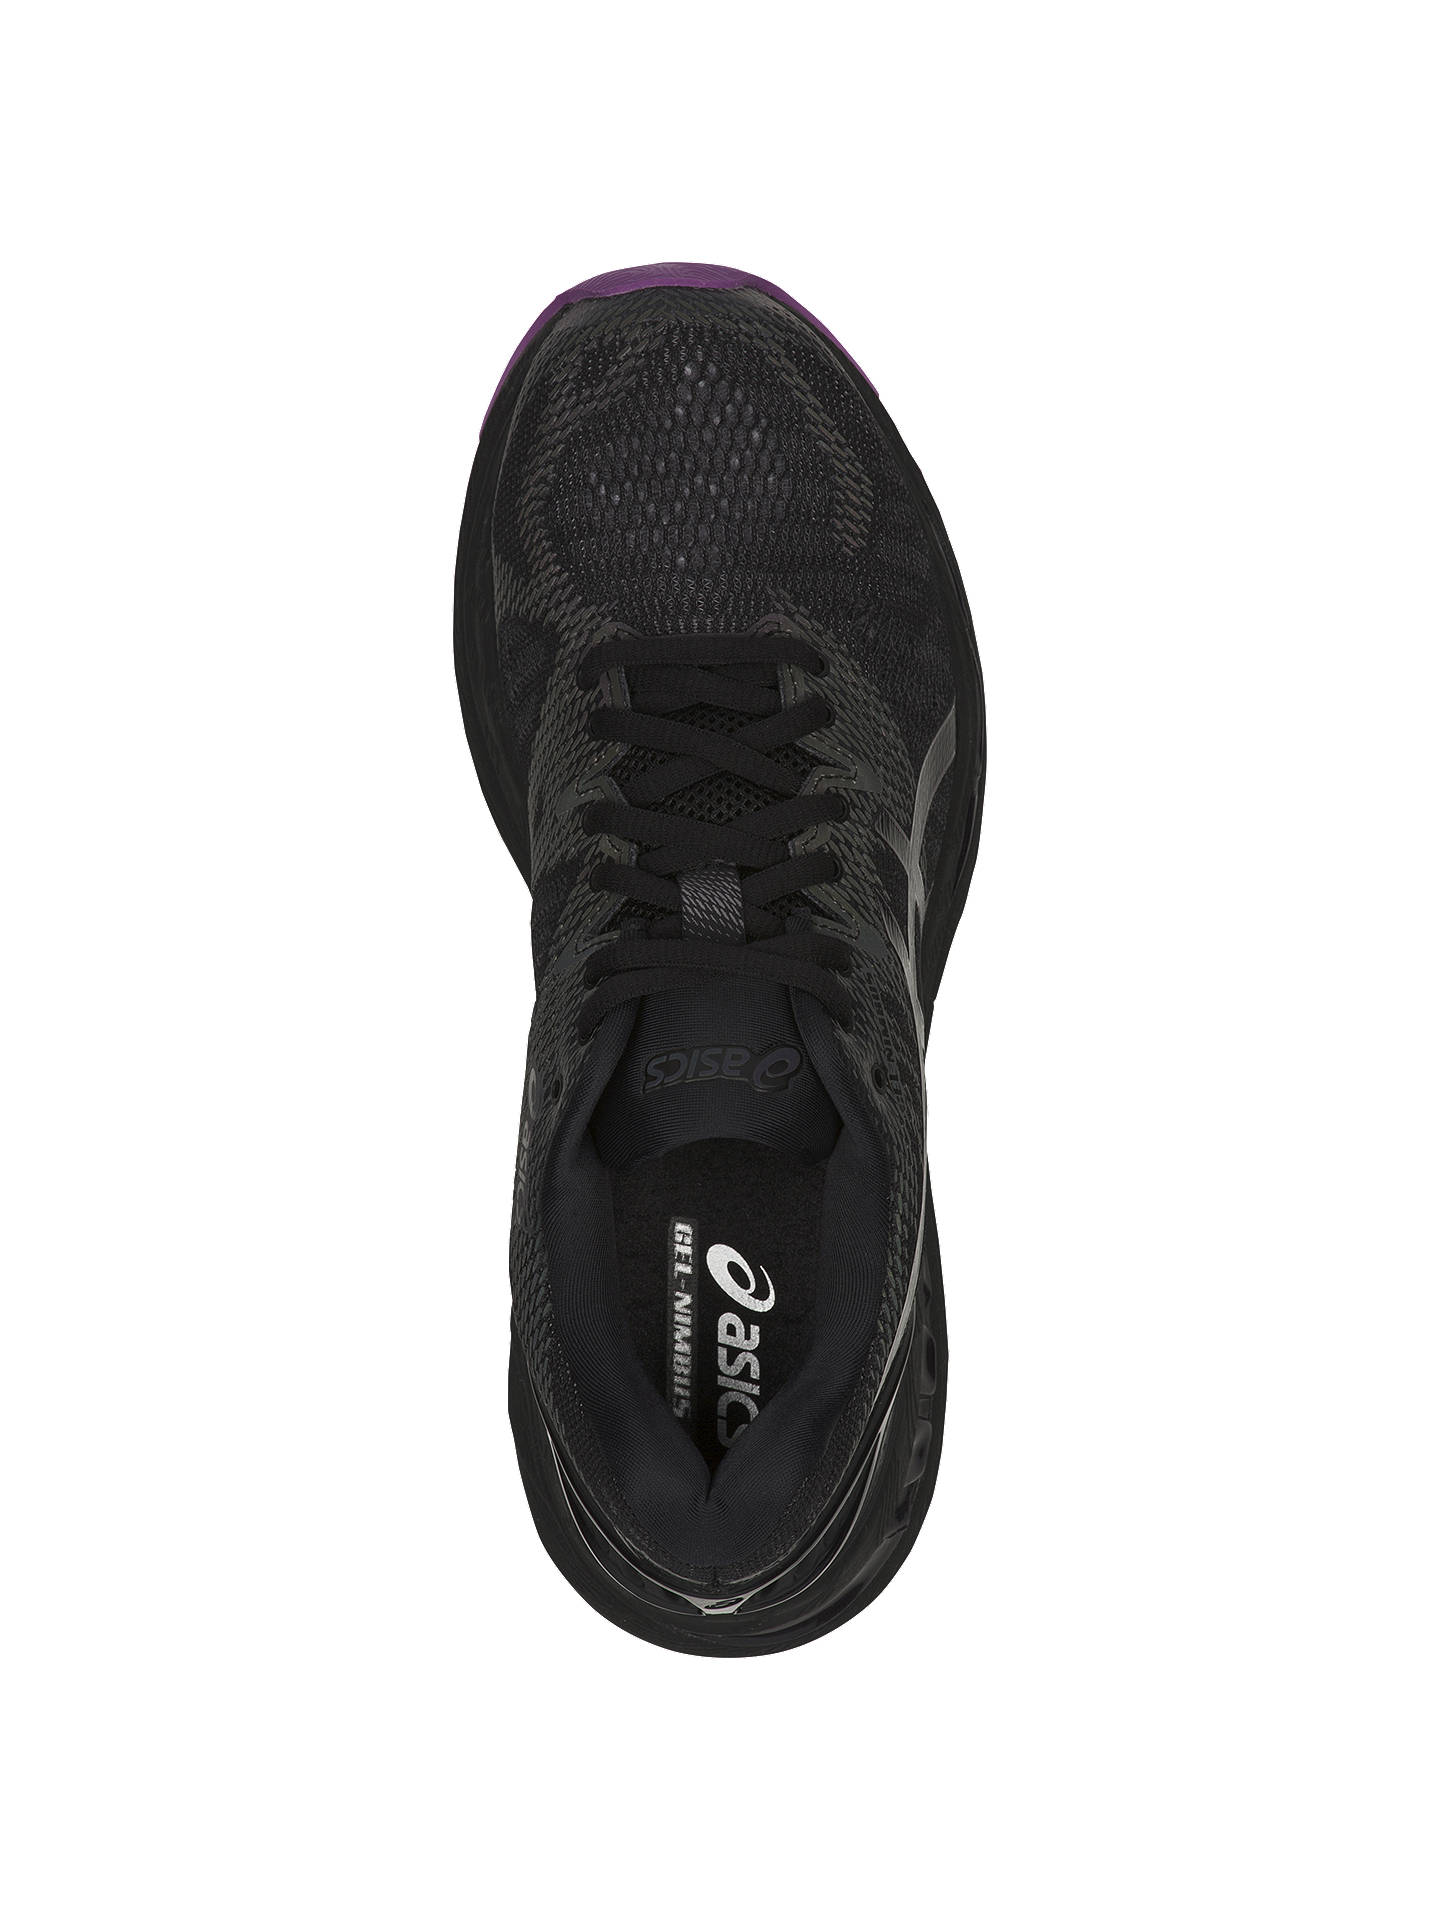 Buy ASICS GEL-NIMBUS 20 Women's Running Shoes, Black, 4 Online at johnlewis.com